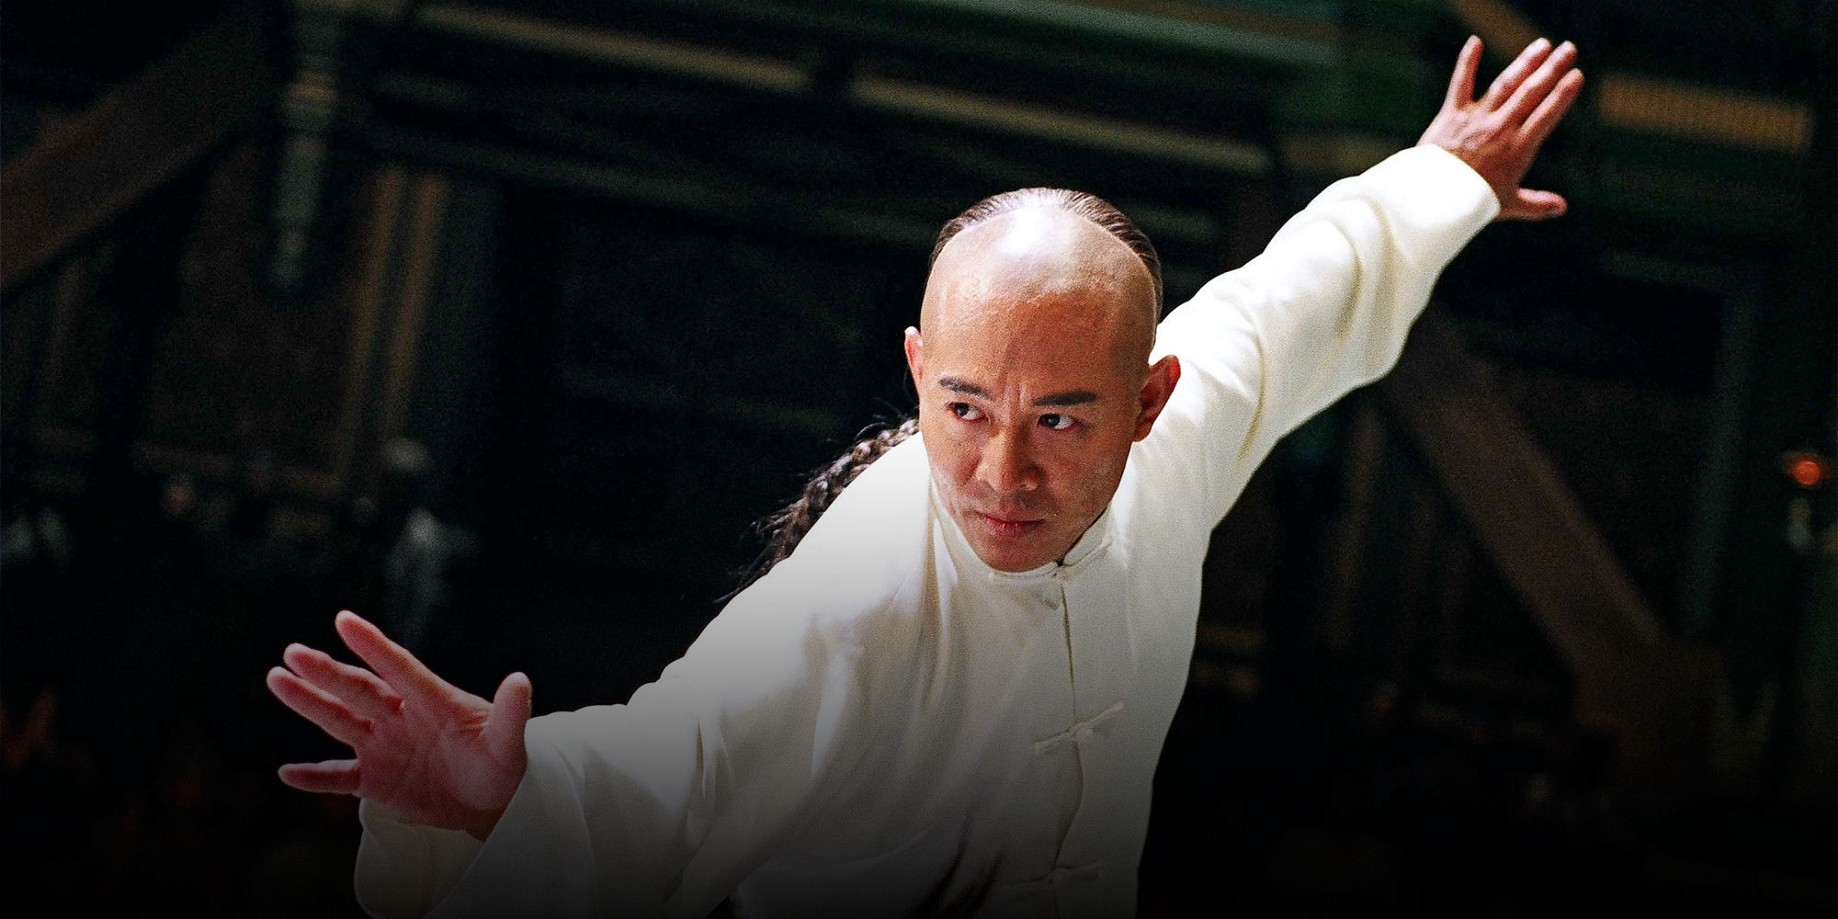 966d19648 Kung Fu Superstar Jet Li: How I'll Bring Tai Chi to the Olympics